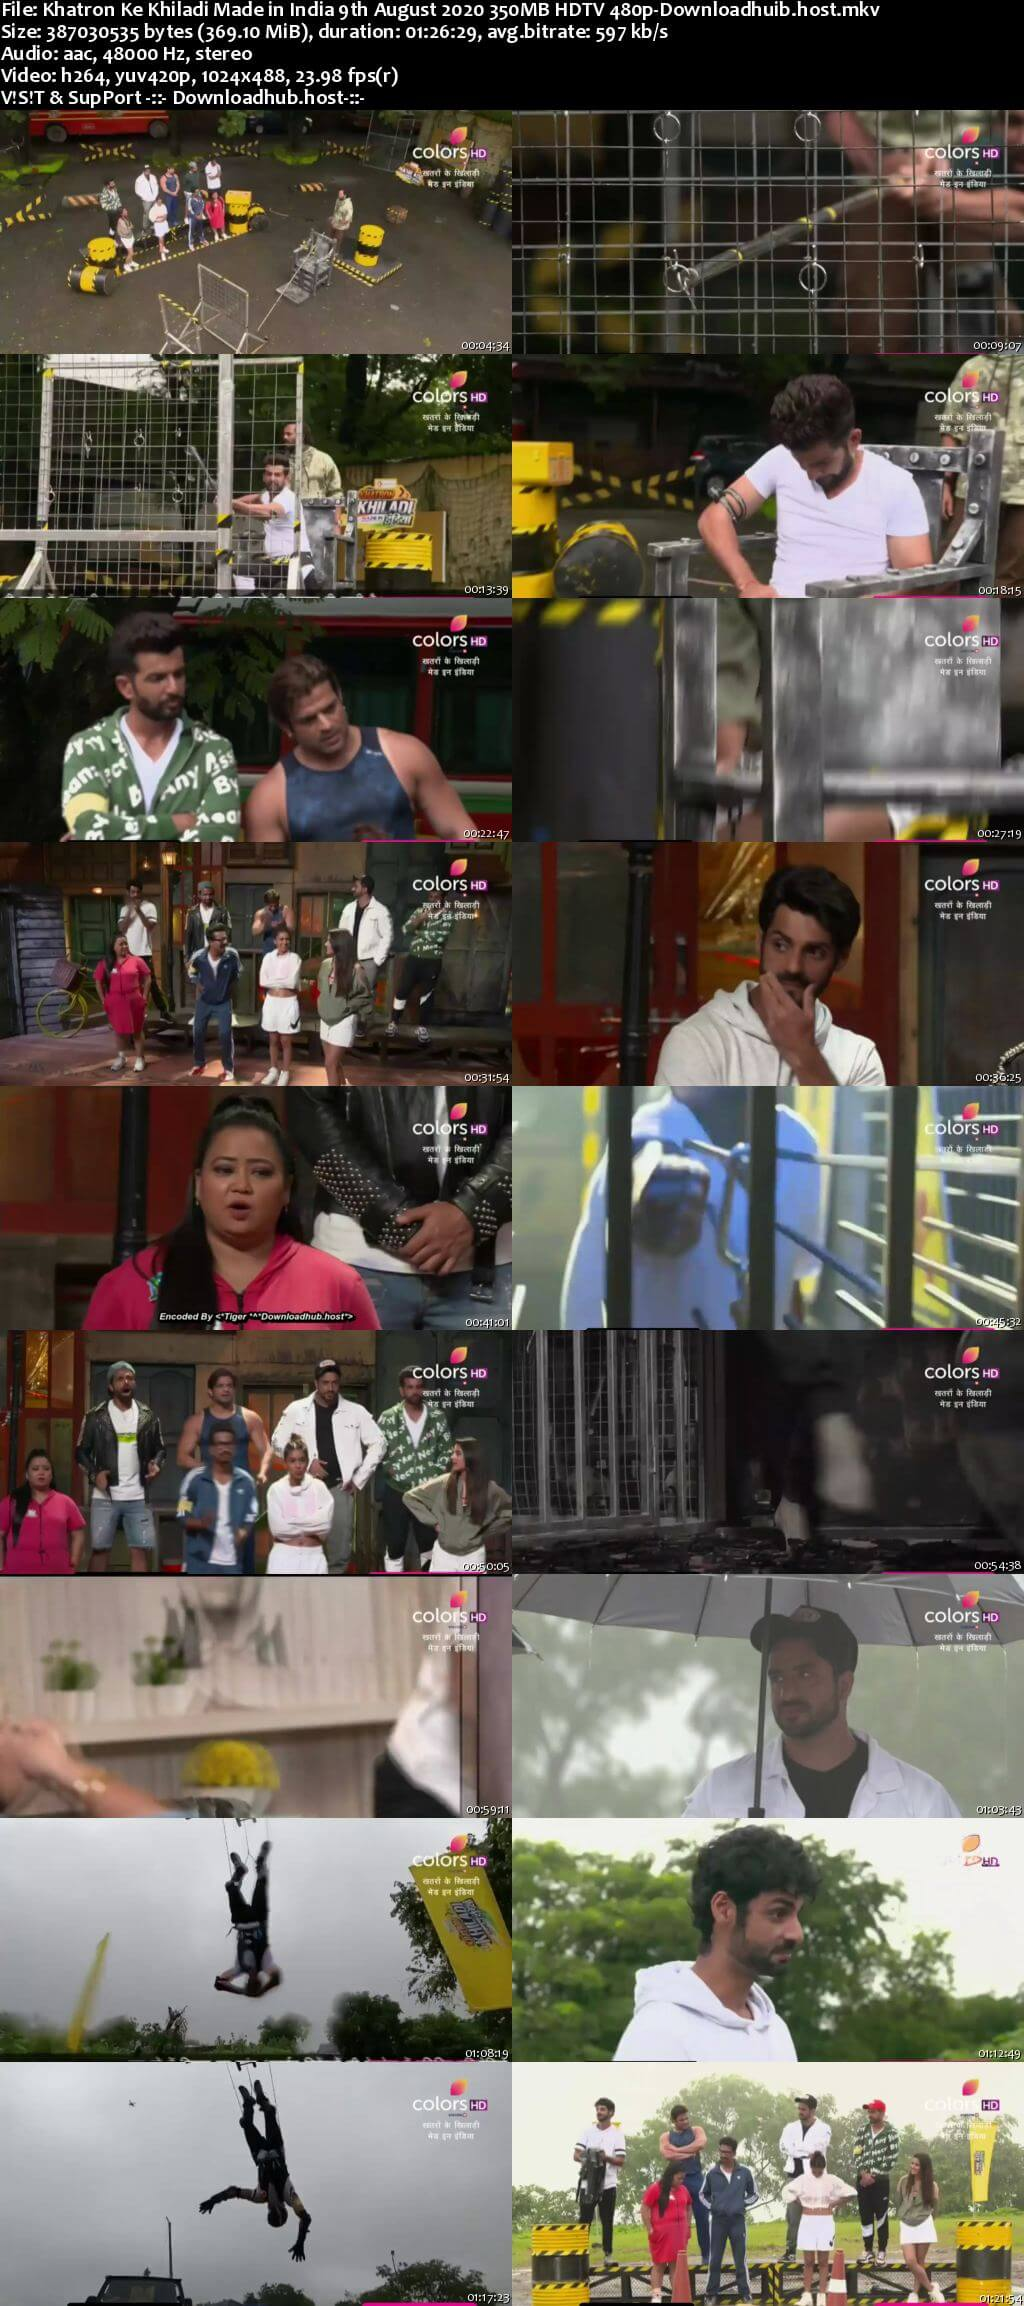 Khatron Ke Khiladi Made in India 09 August 2020 Episode 04 HDTV 480p